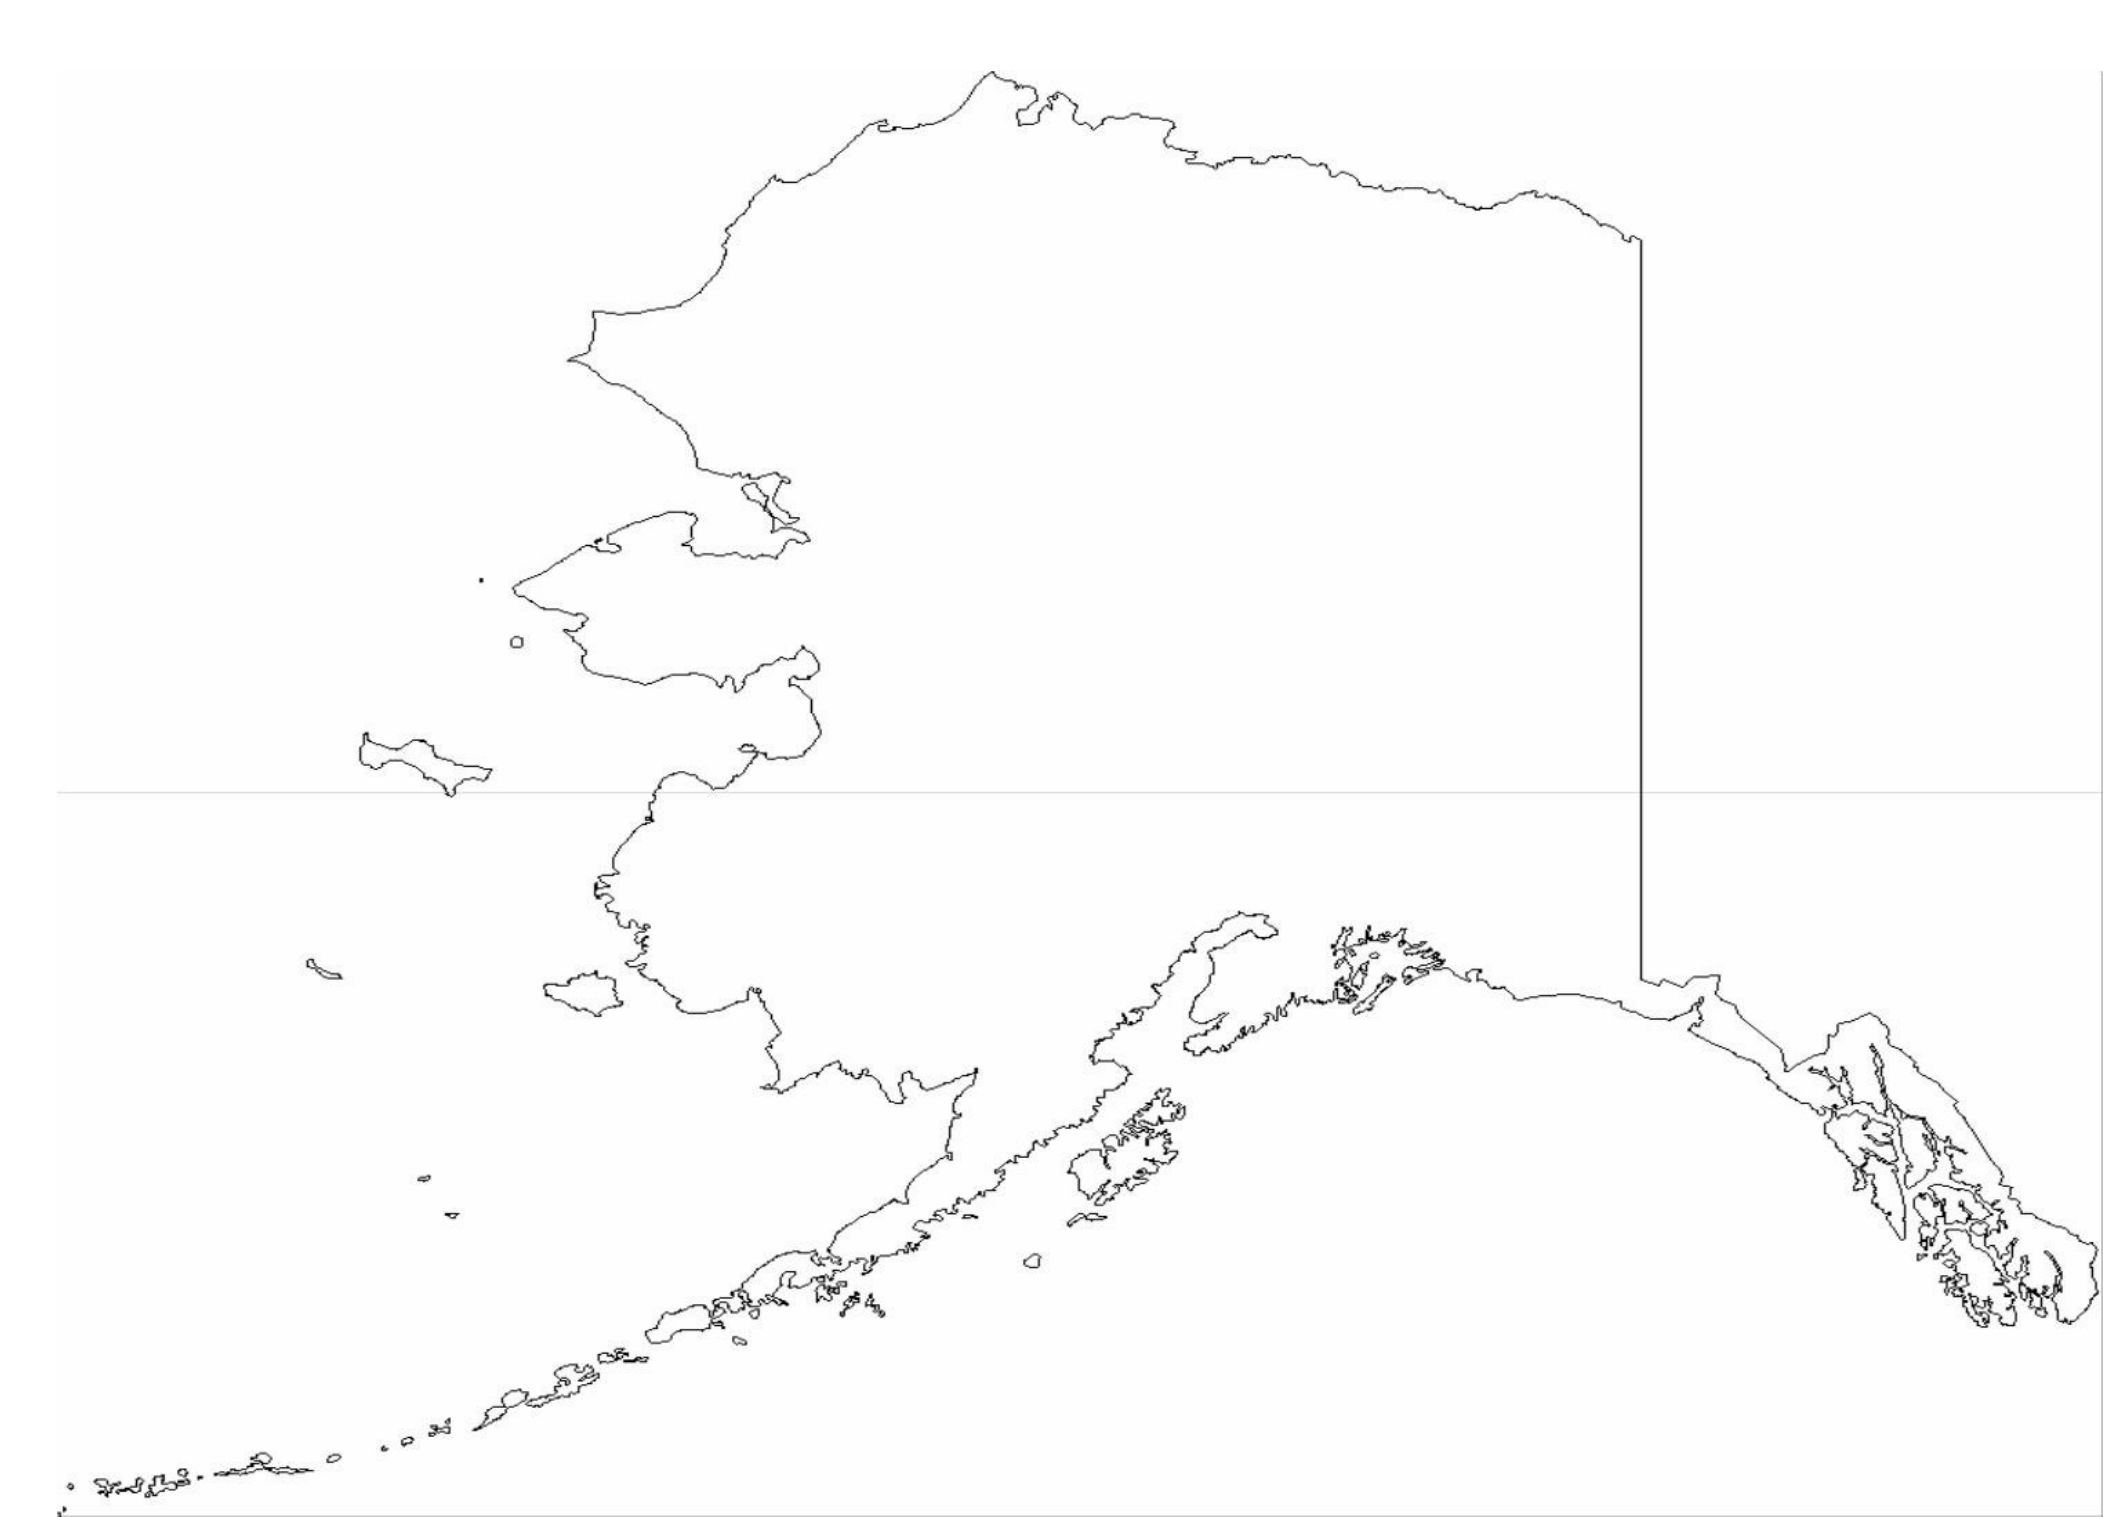 Alaska State Outline Map Free Download